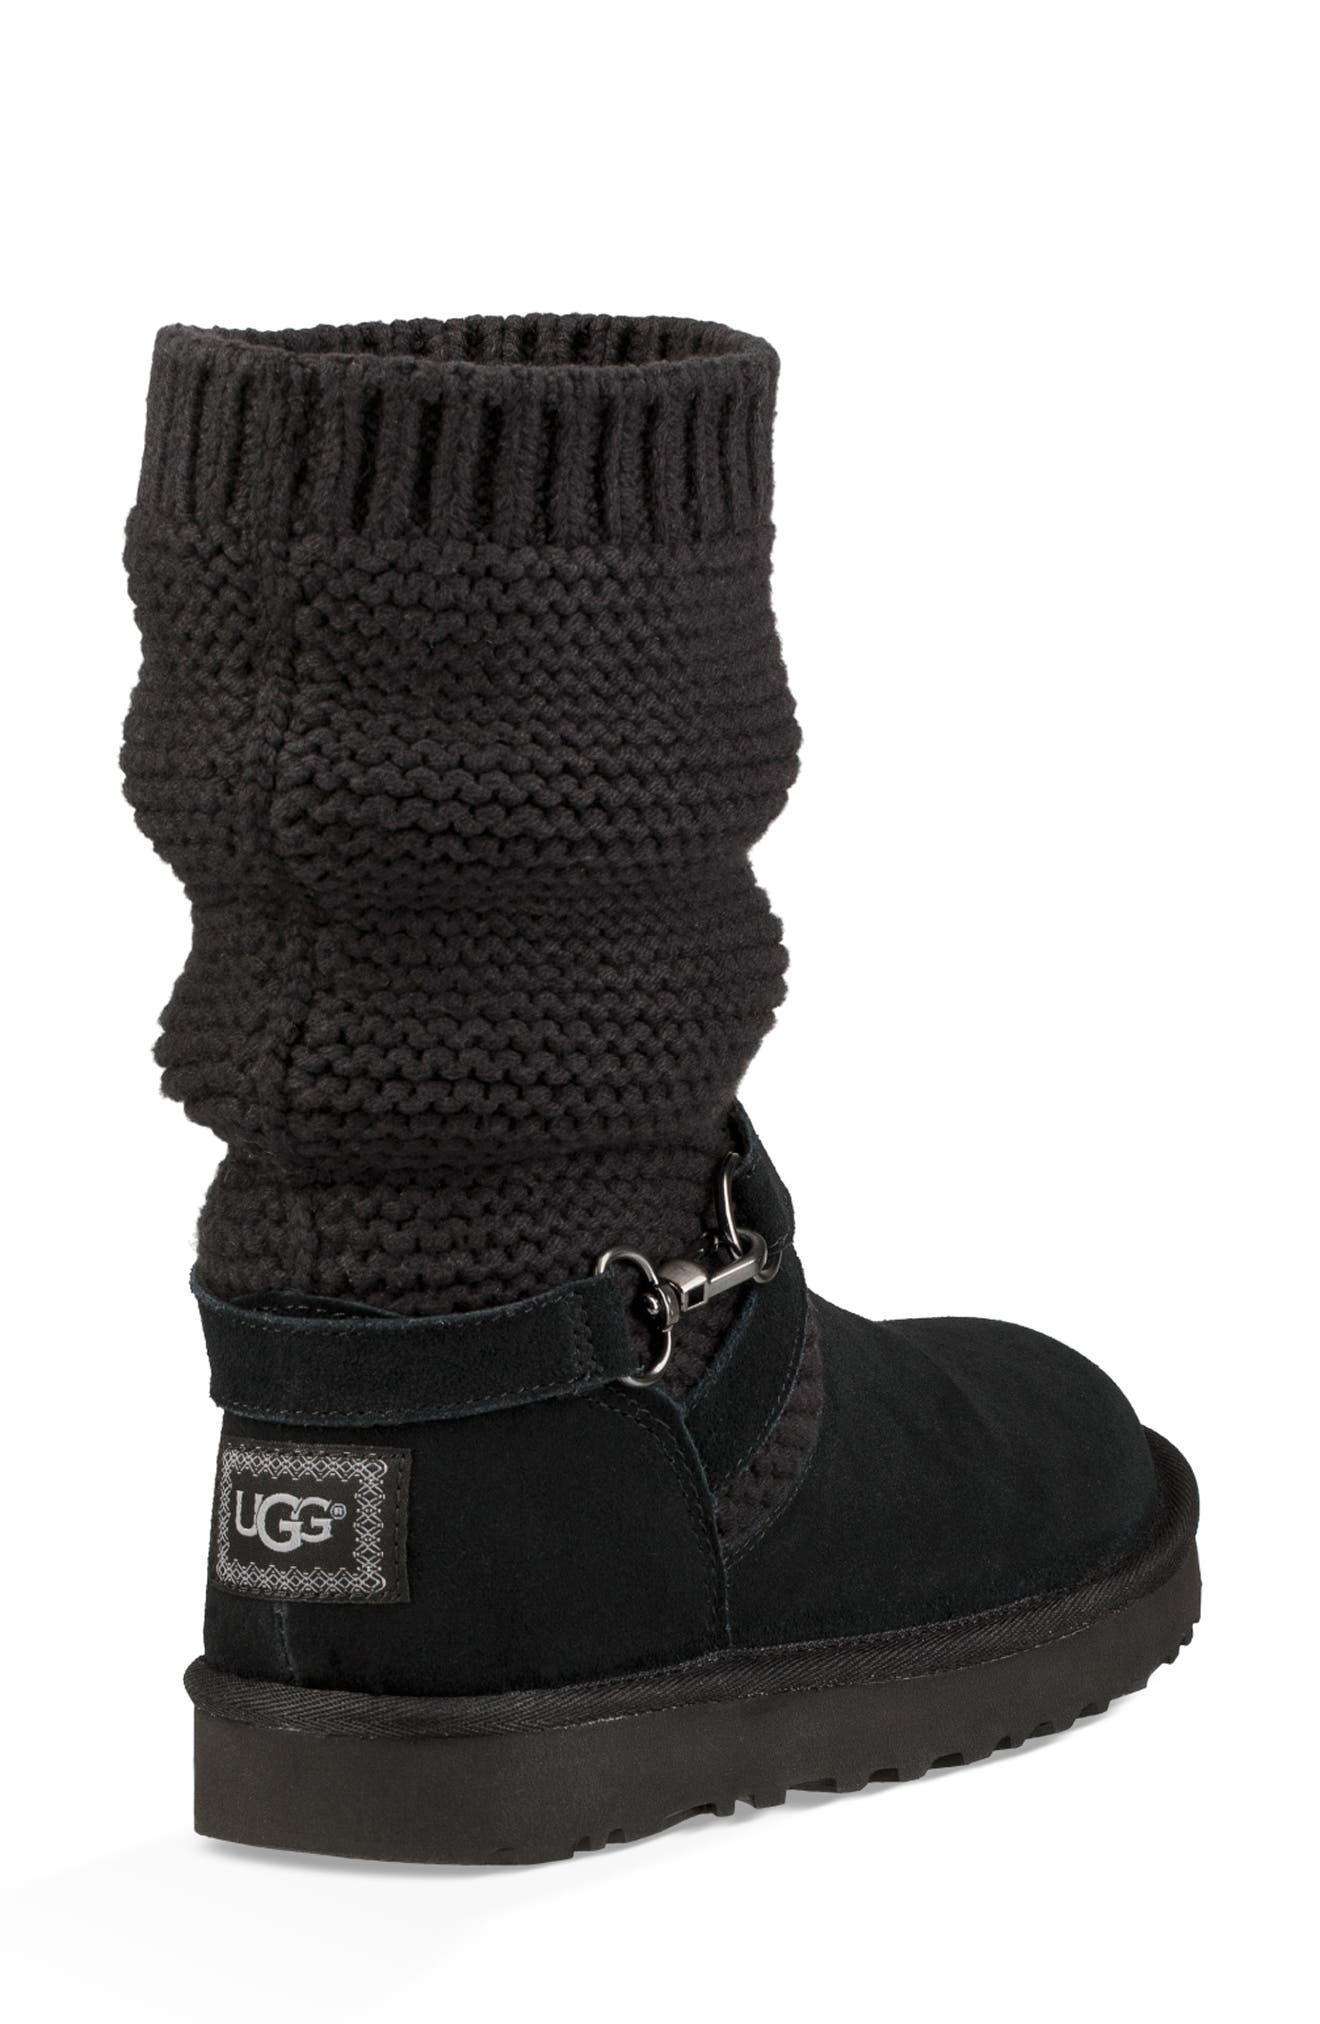 UGGpure<sup>™</sup> Strappy Purl Knit Bootie,                             Alternate thumbnail 3, color,                             BLACK SUEDE